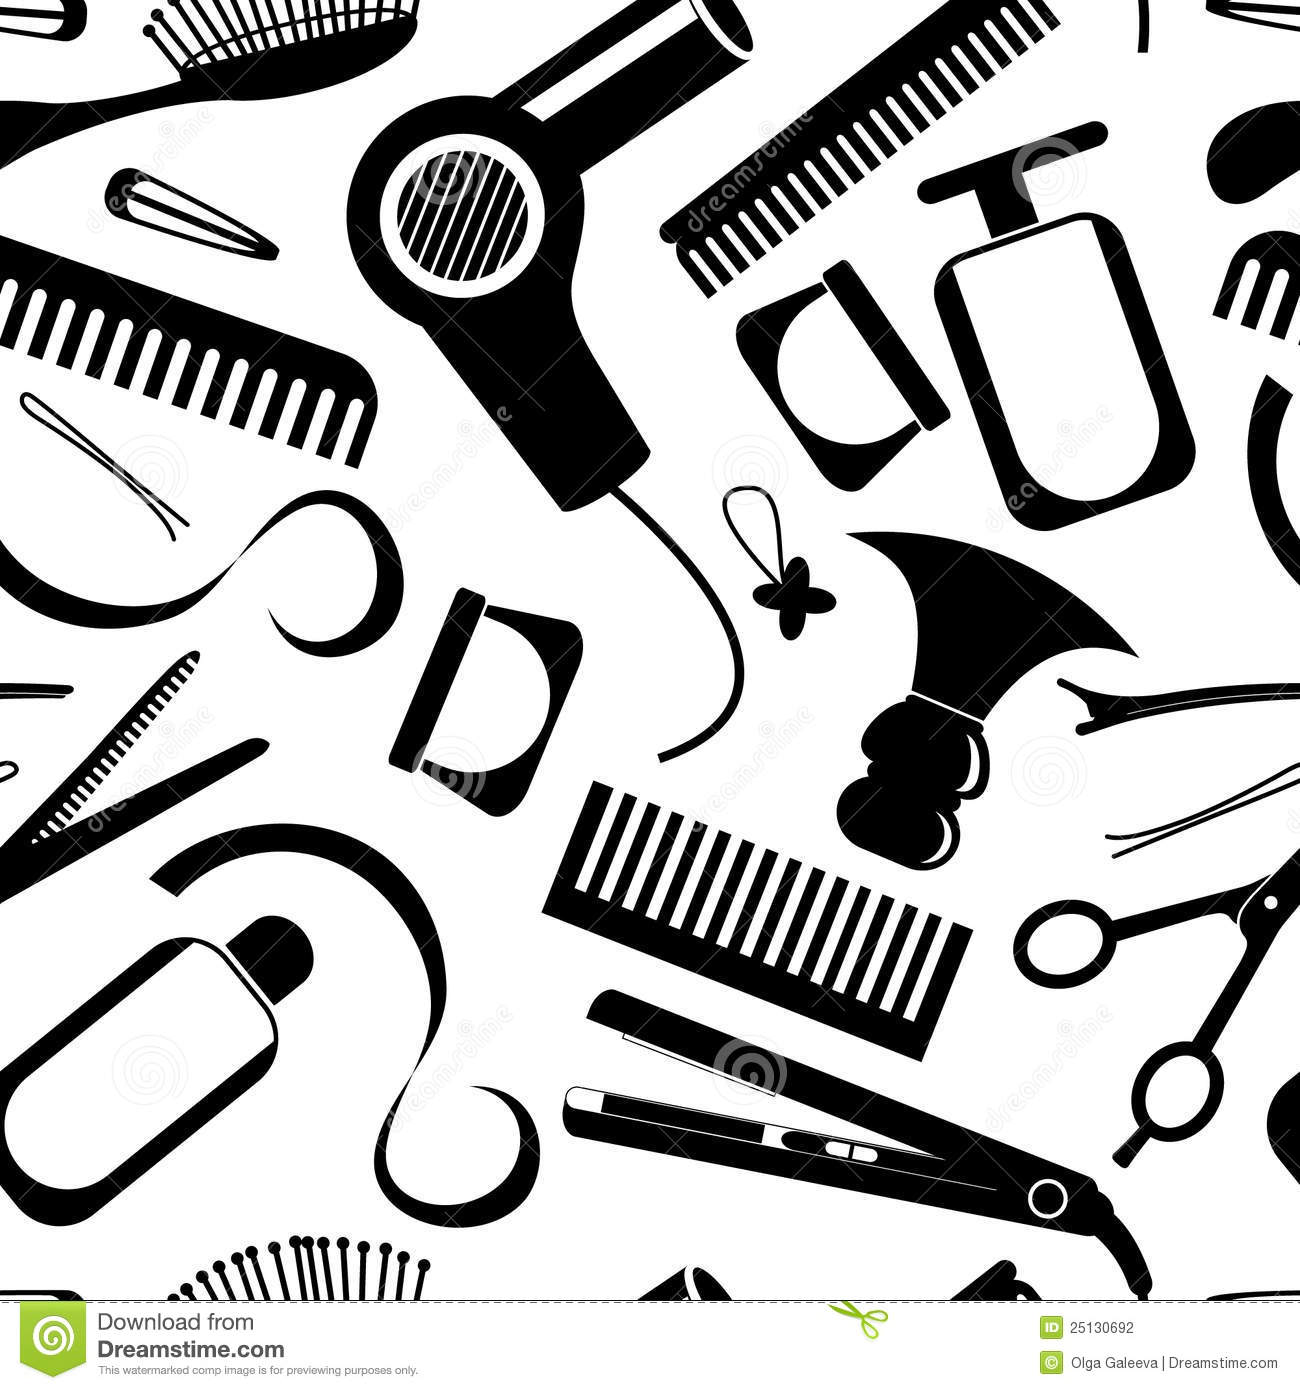 Image Gallery Of Hair Salon Supplies Clipart Hairdressing Equipment Pattern 25130692